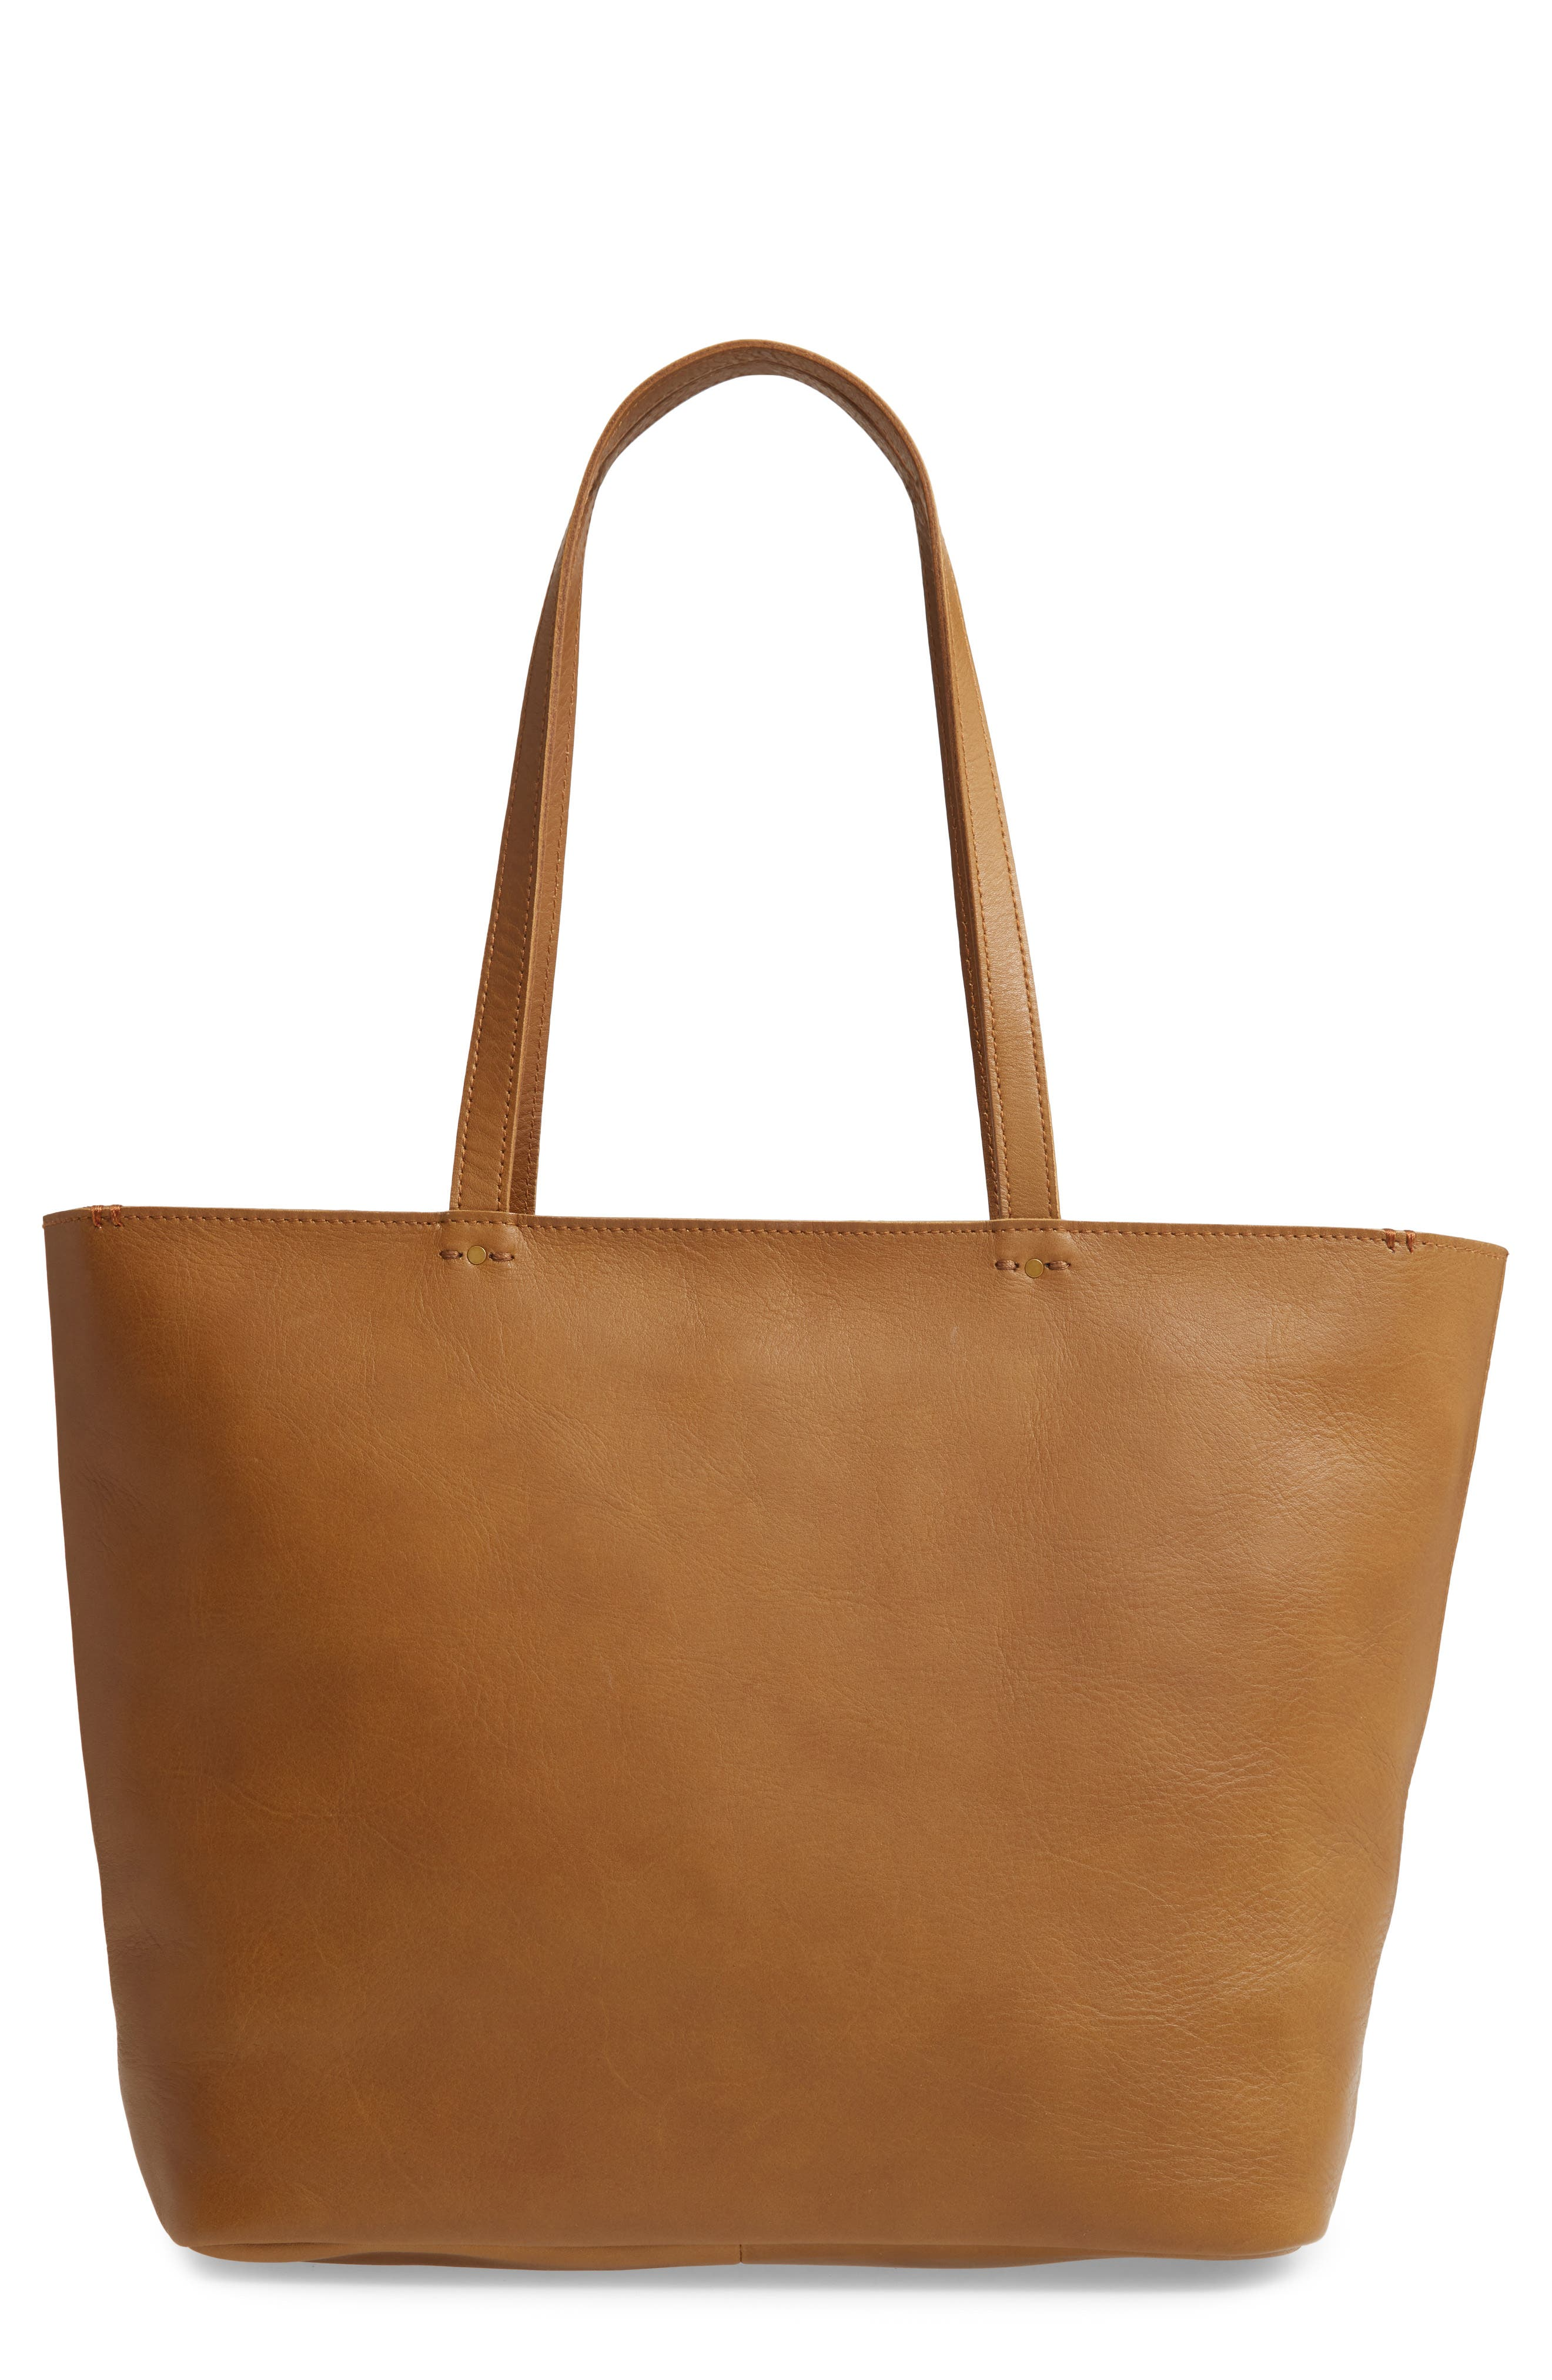 8d96cedb18 Women s Tote Bags New Arrivals  Clothing